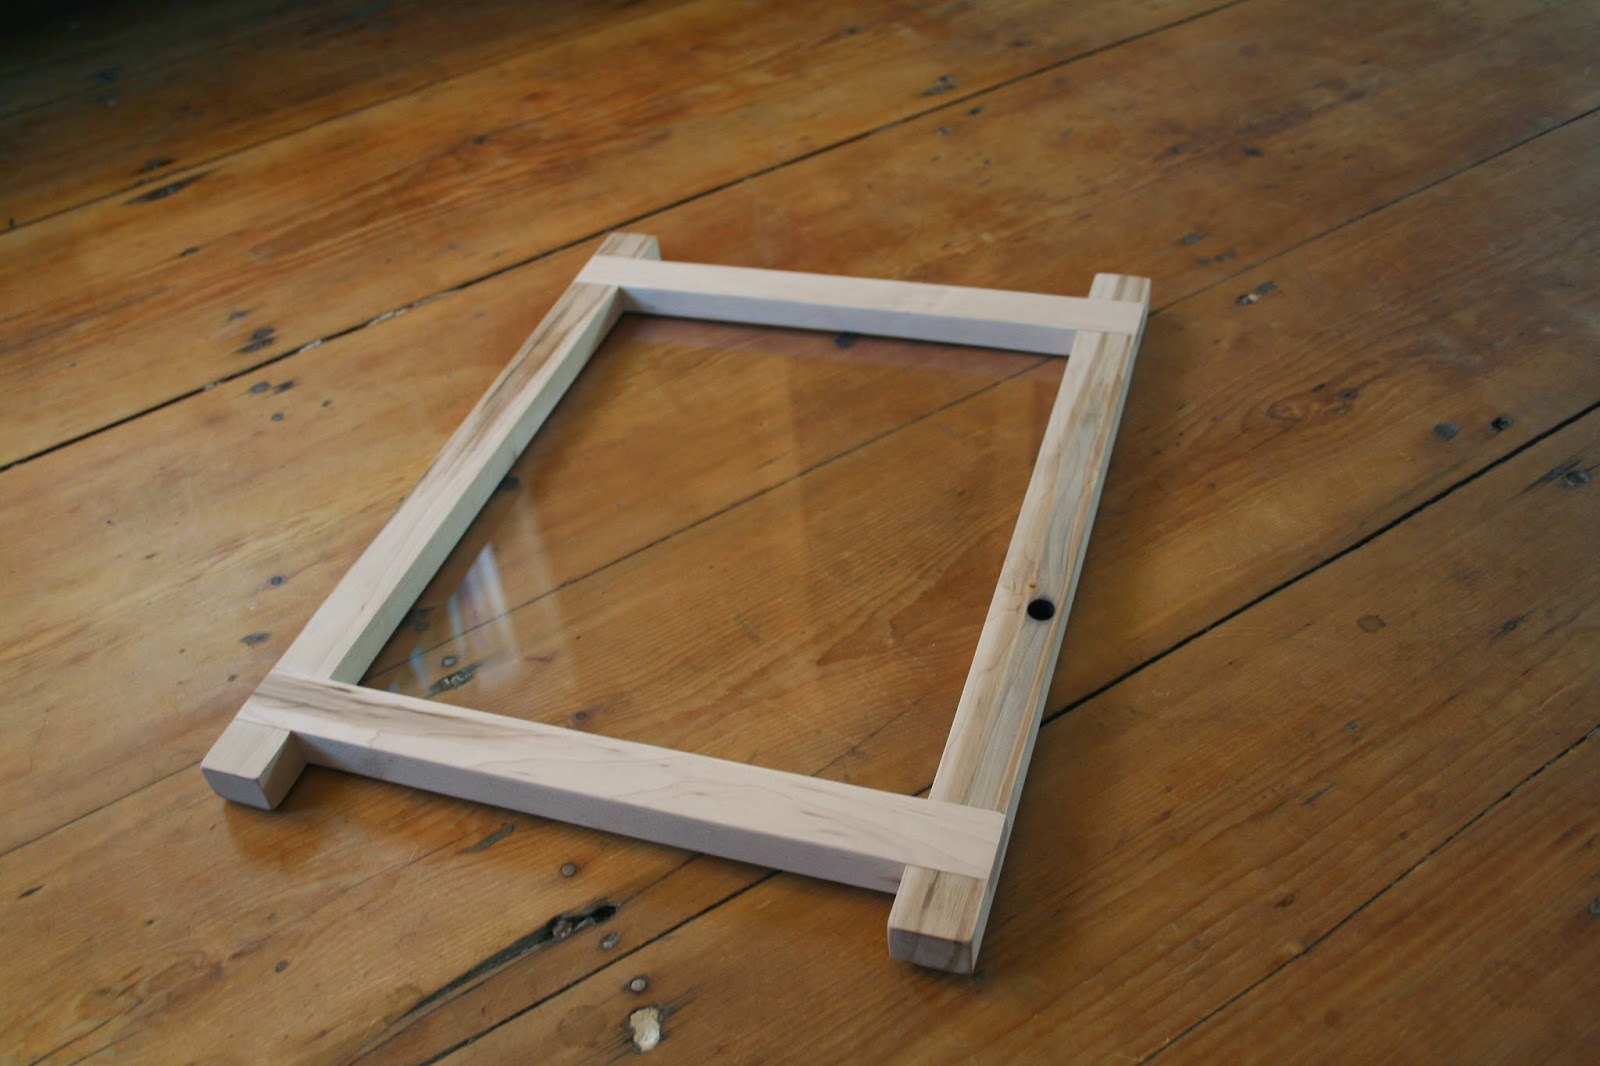 Sugar maple picture frames vaughan woodworks this one was made with the same tapped maple stock as my dining room table top the frame features lap joints at each corner for sale 120 jeuxipadfo Image collections